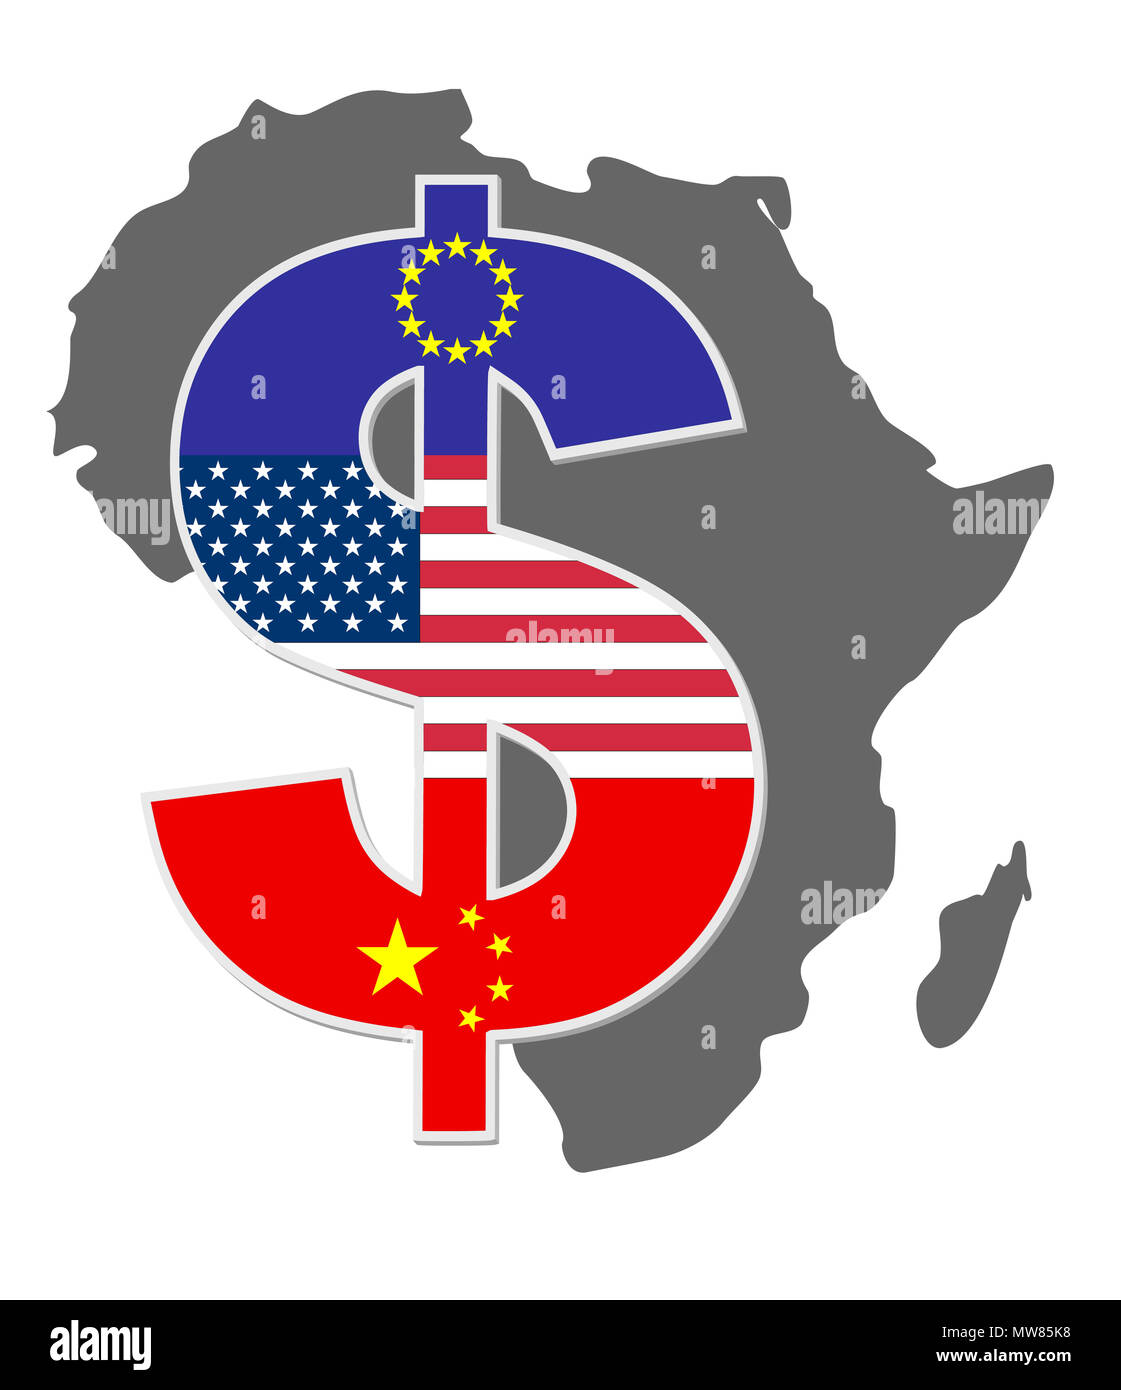 African countries are getting exploited by western countries and China - Stock Image